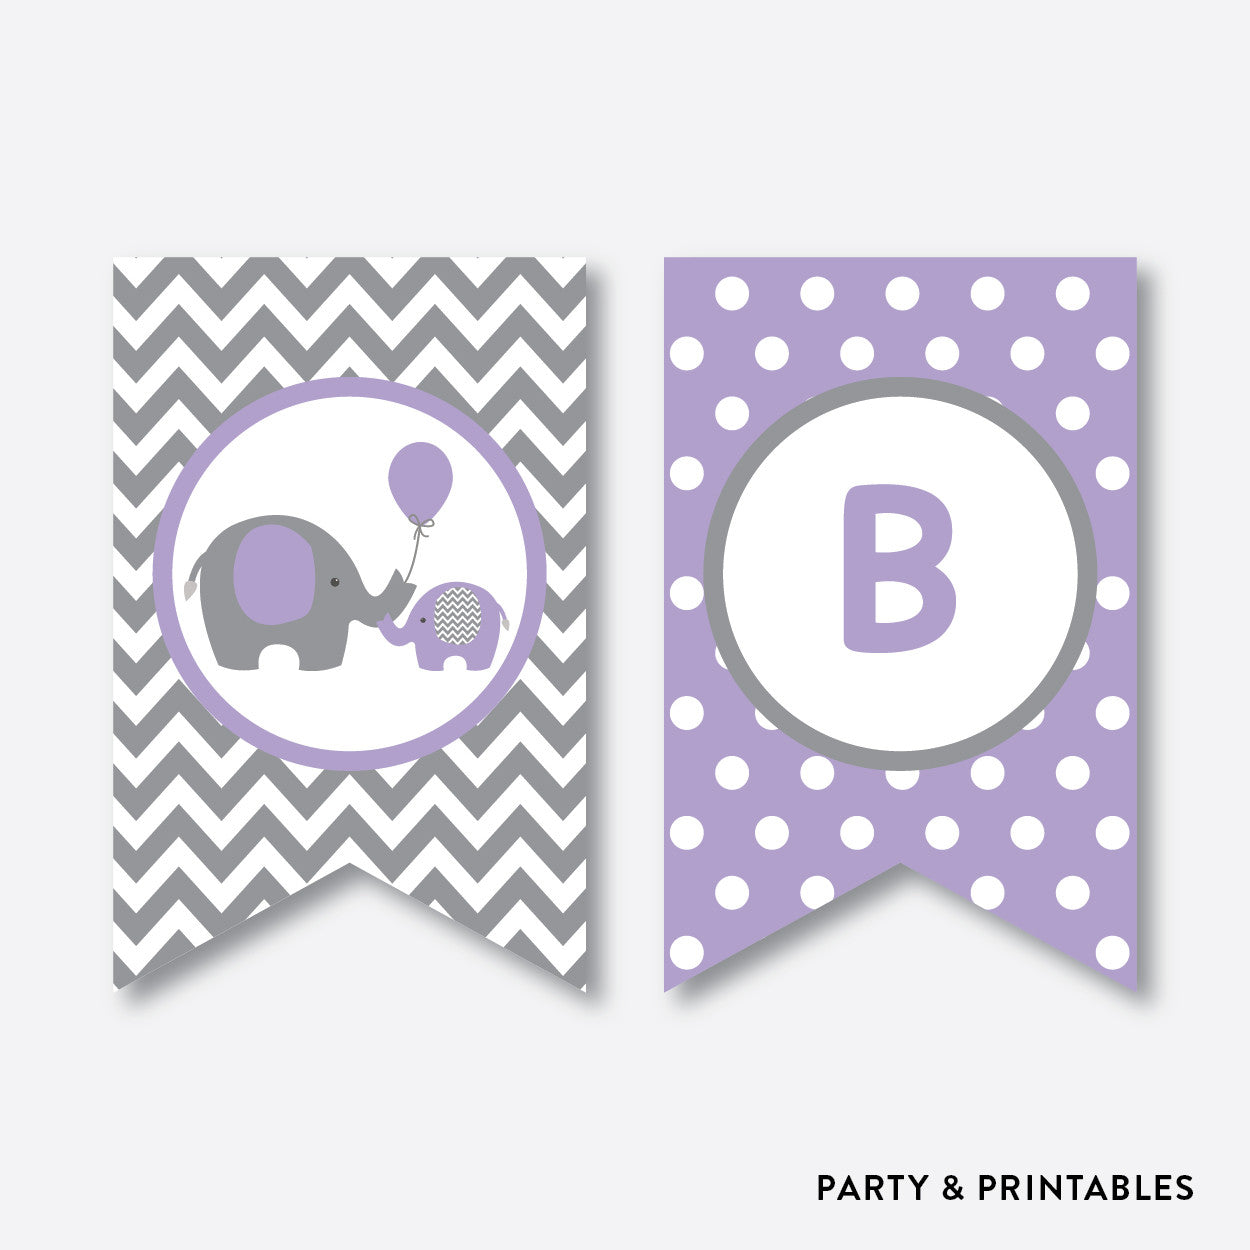 Elephant Party Banner / Baby Shower Banner / Non-Personalized / Instant Download (SBS.38), party printables - Party and Printables